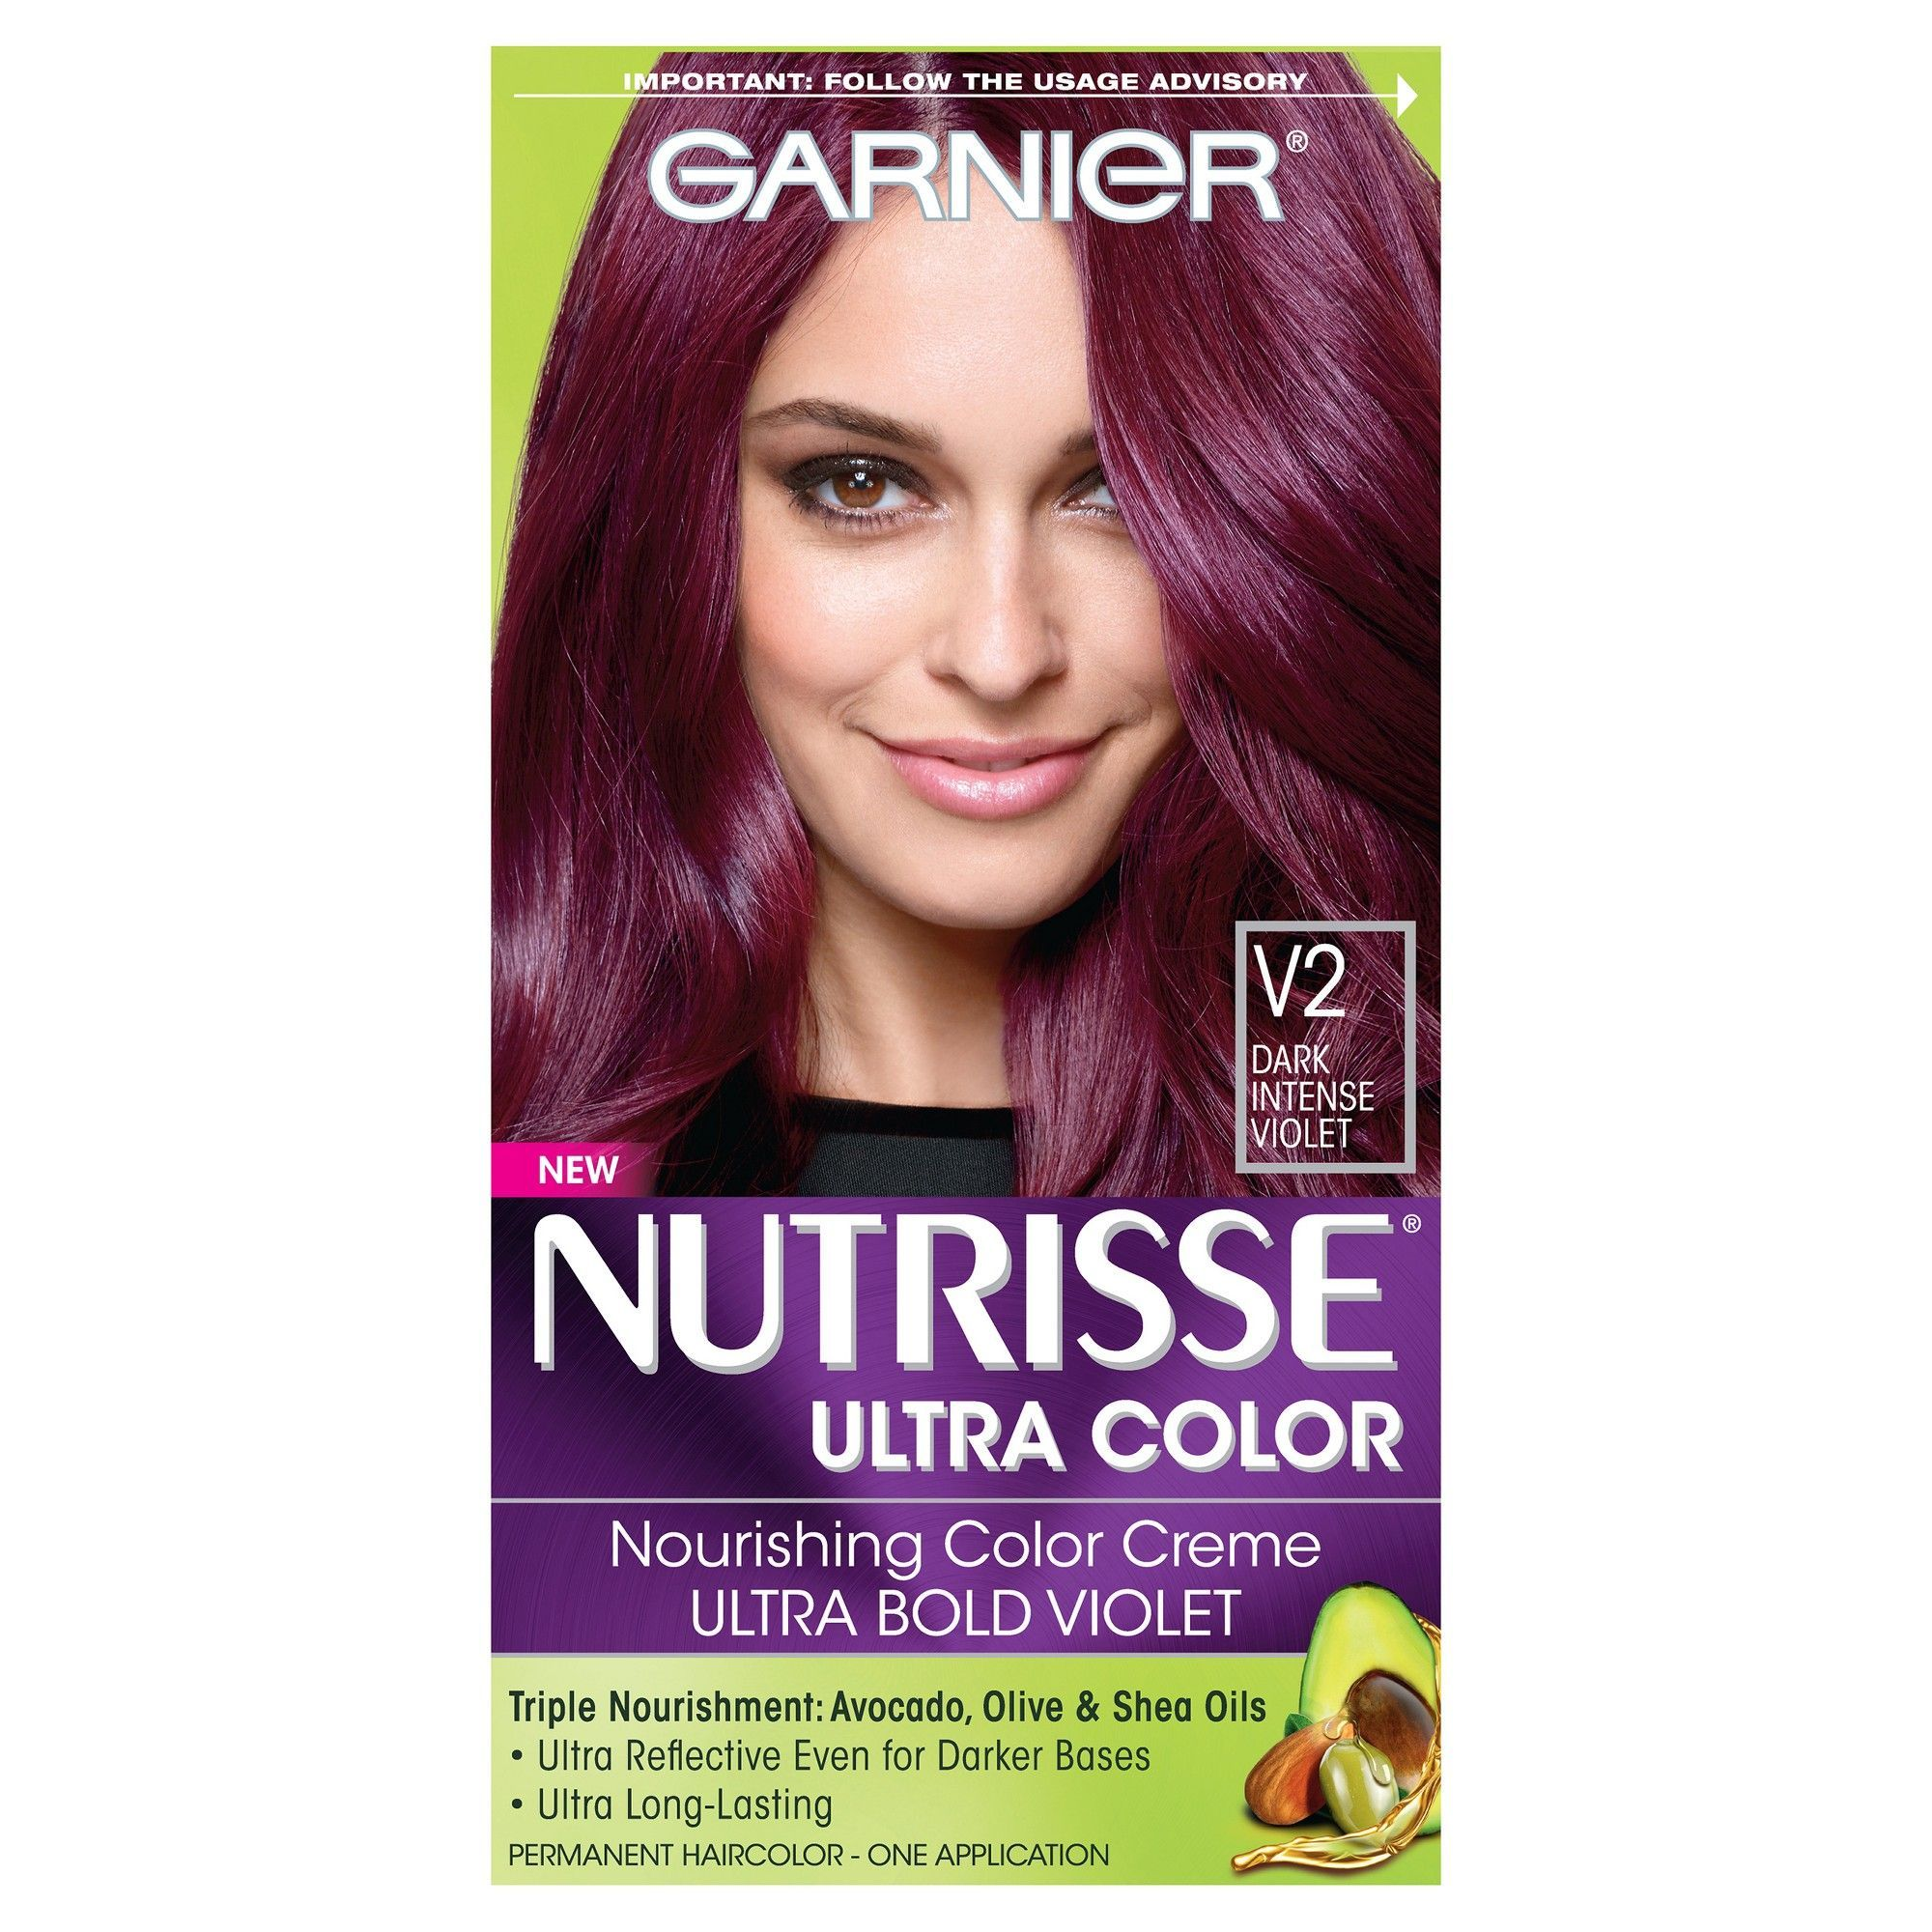 Garnier Nutrisse Nourishing Color Creme V2 Dark Intense Violet